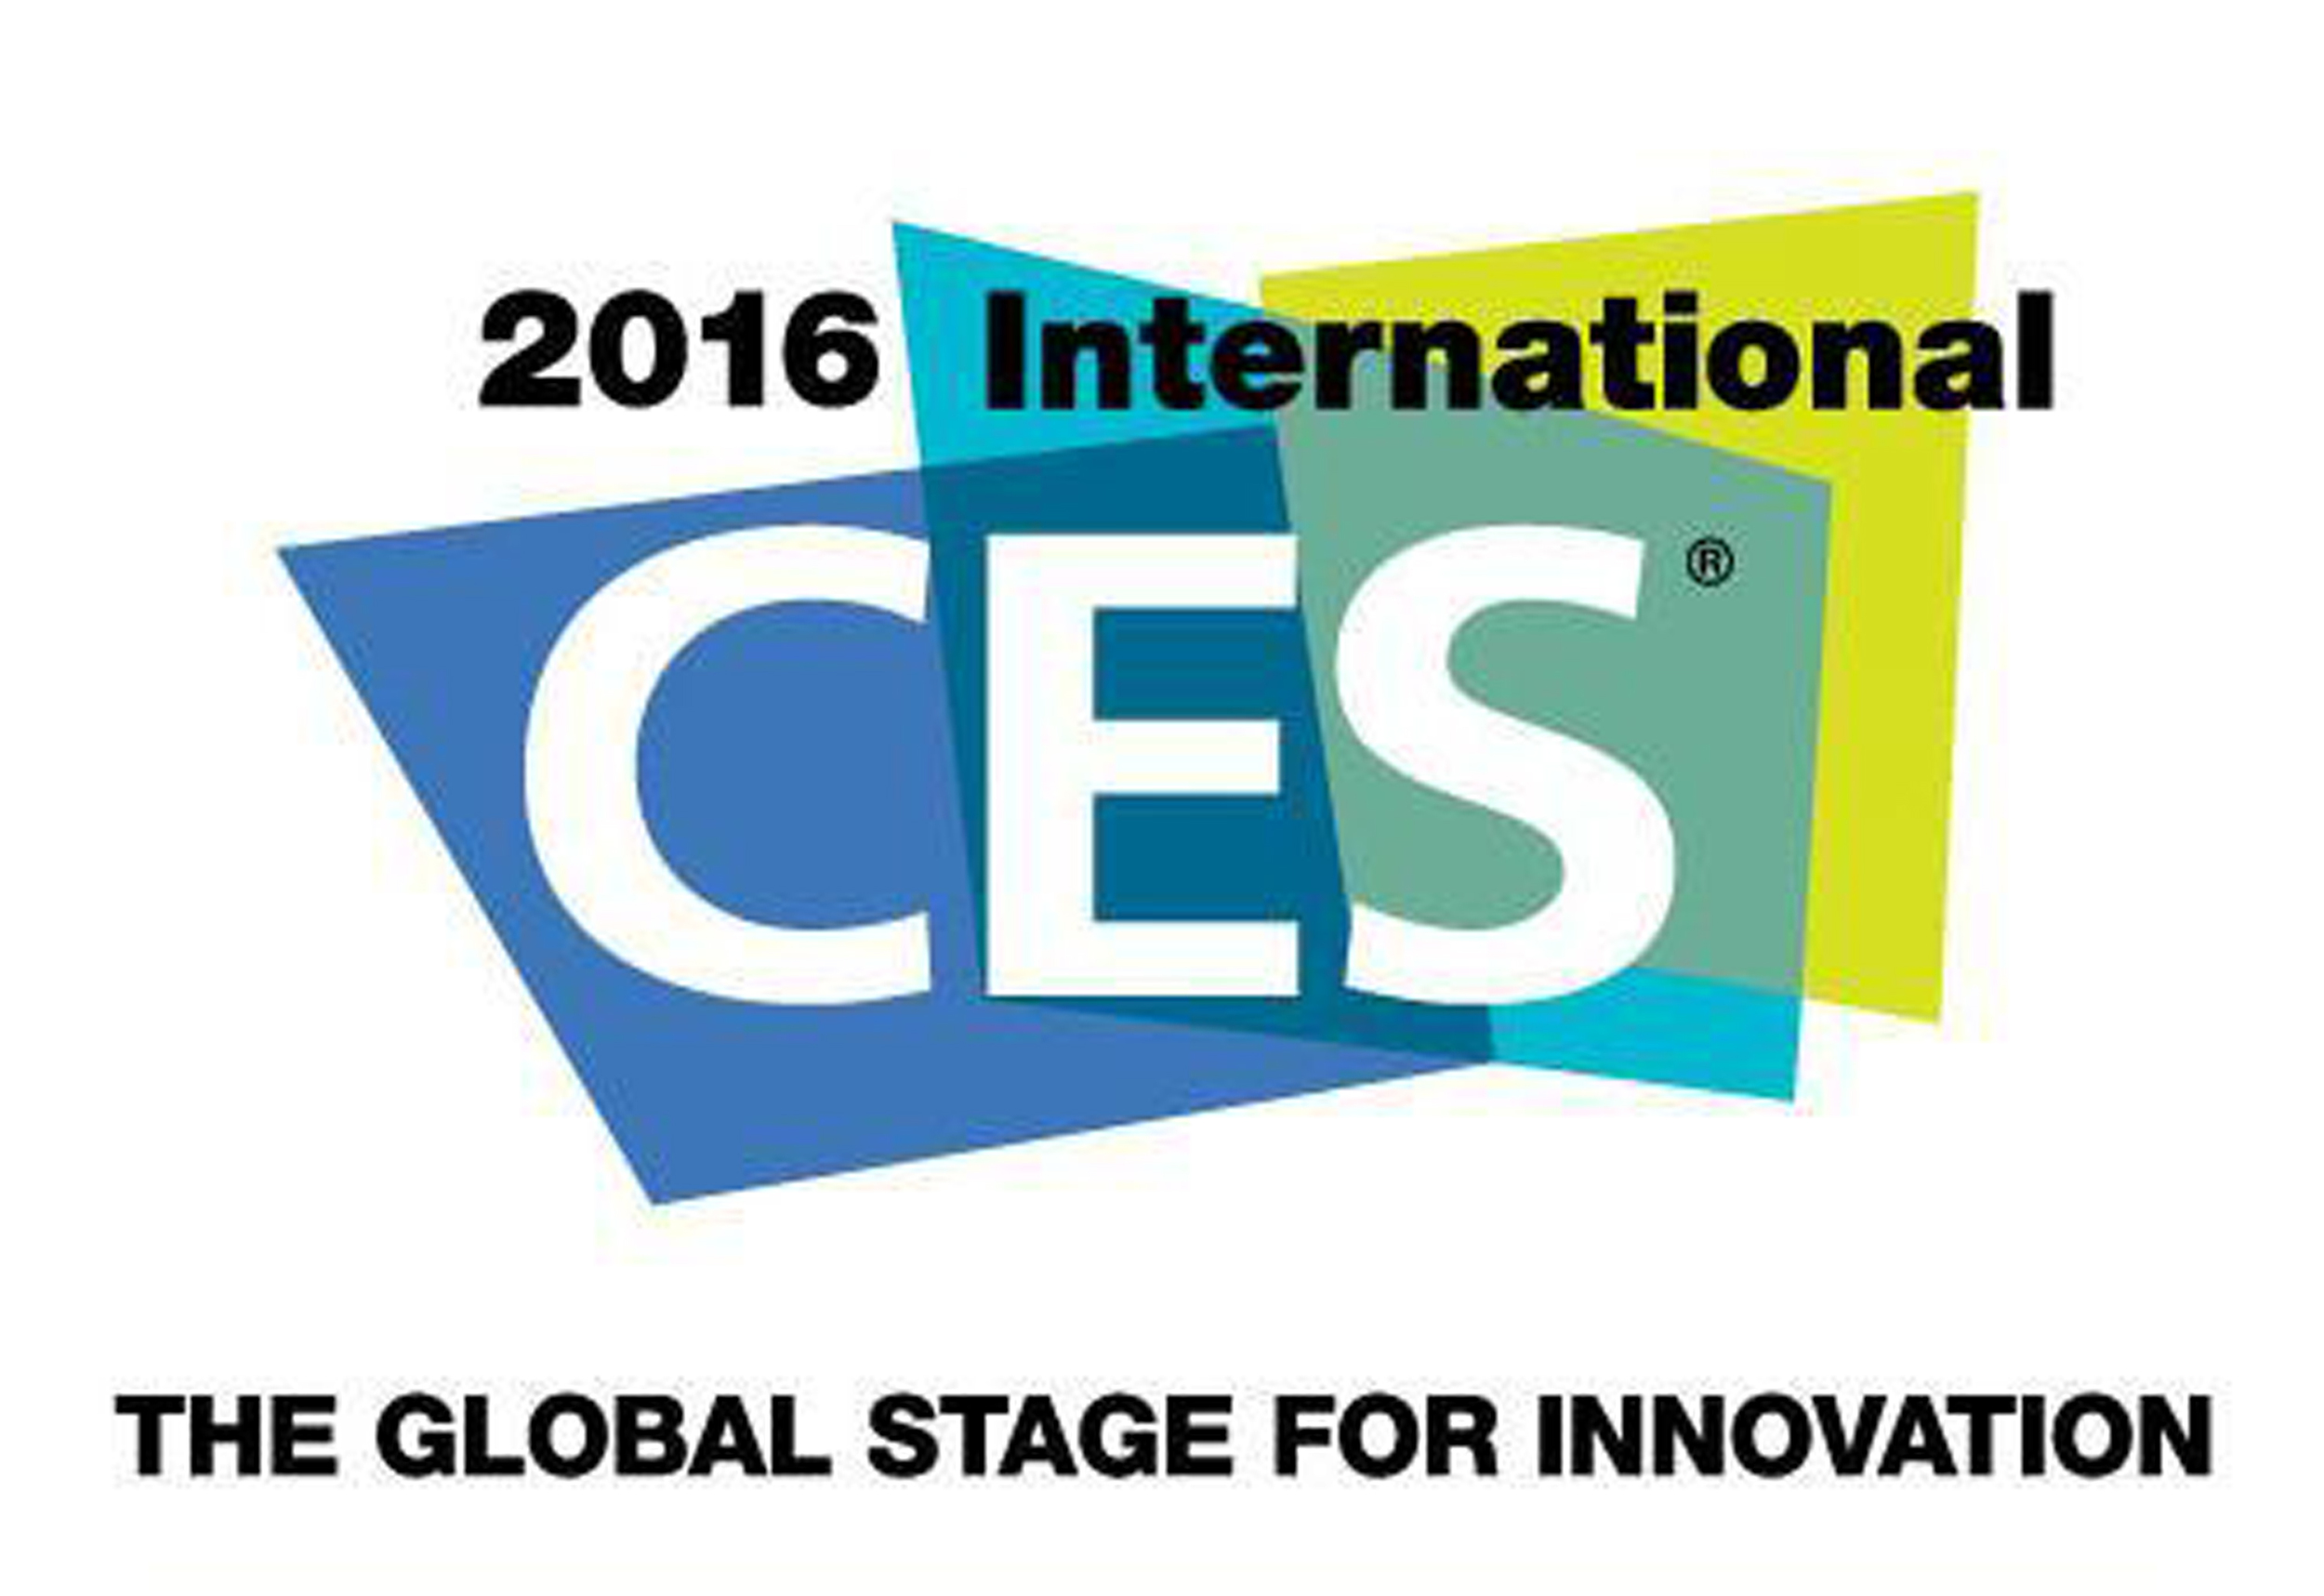 Stereo Depot CES 2016 preview.